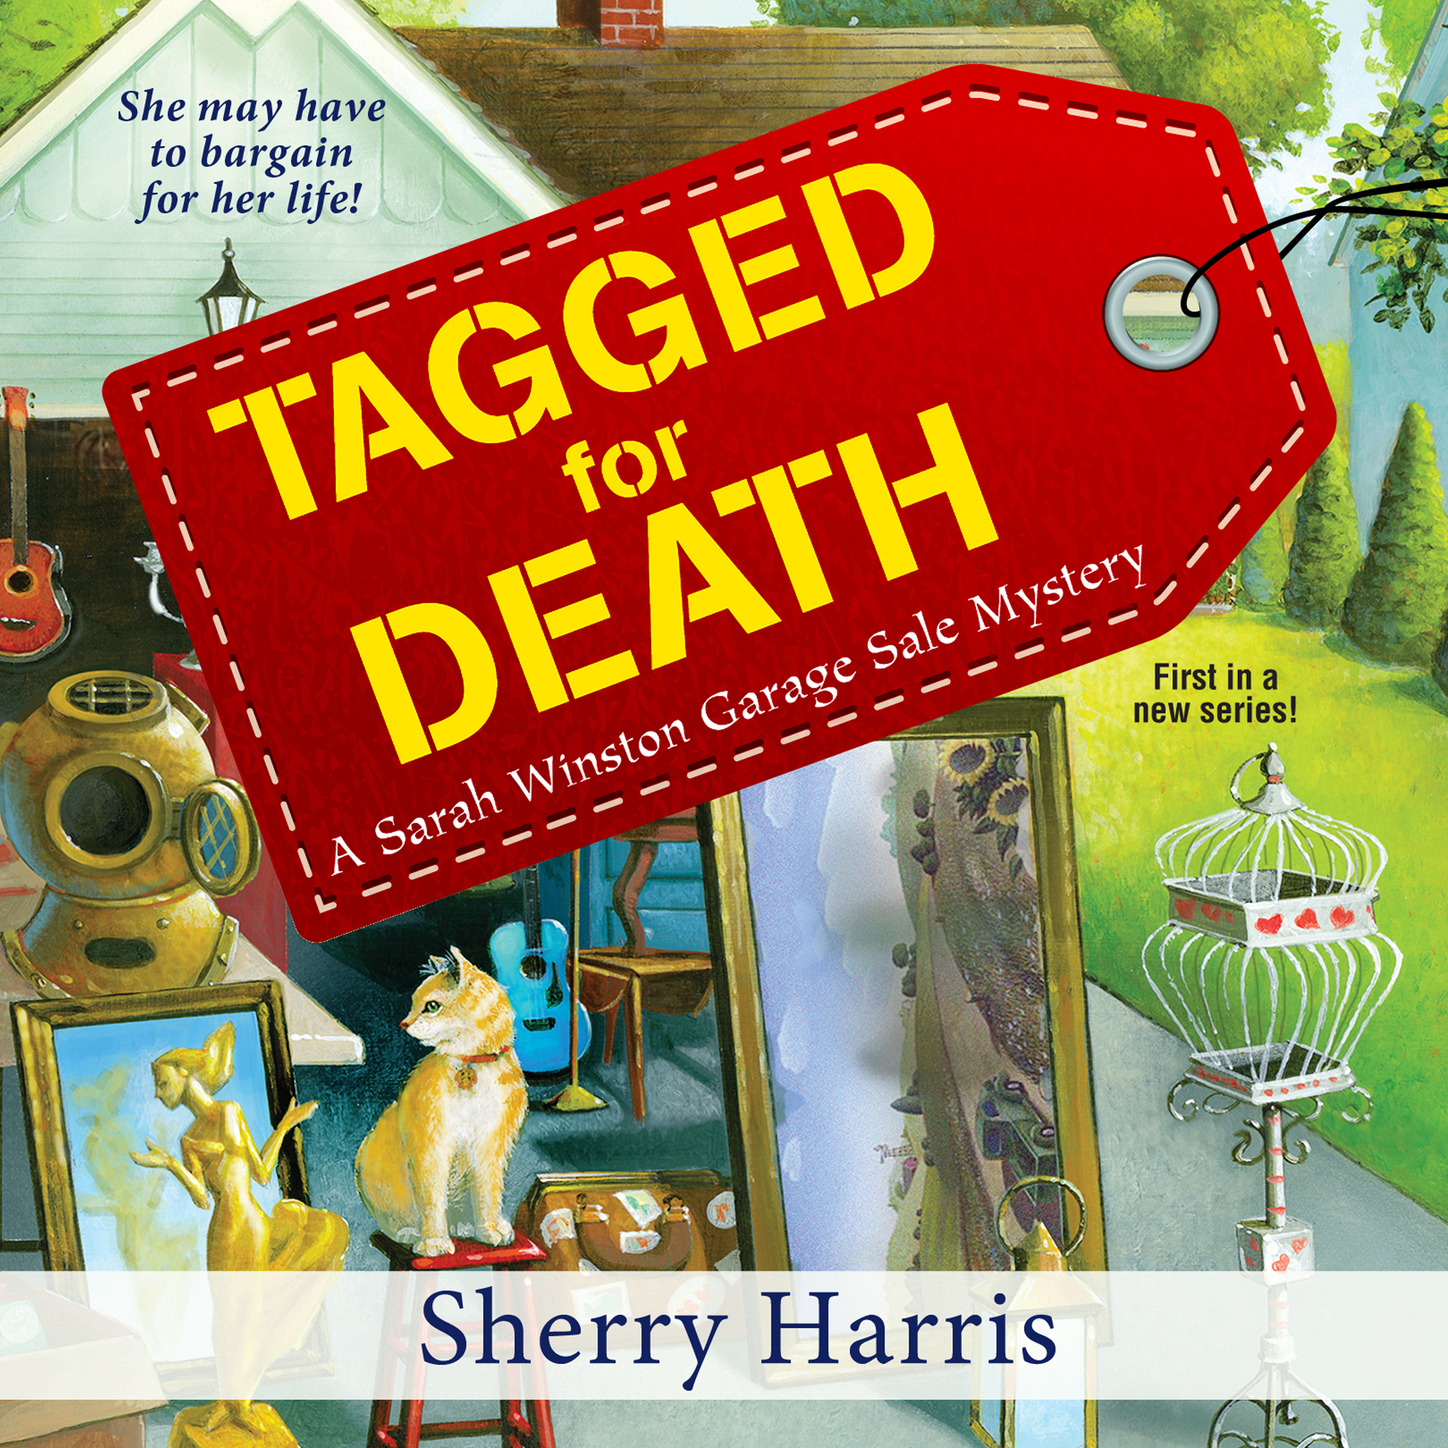 Sherry Harris Tagged for Death - Sarah Winston Garage Sale Mystery 1 (Unabridged) outdoor white inflatable car garage tent with blowers for sale